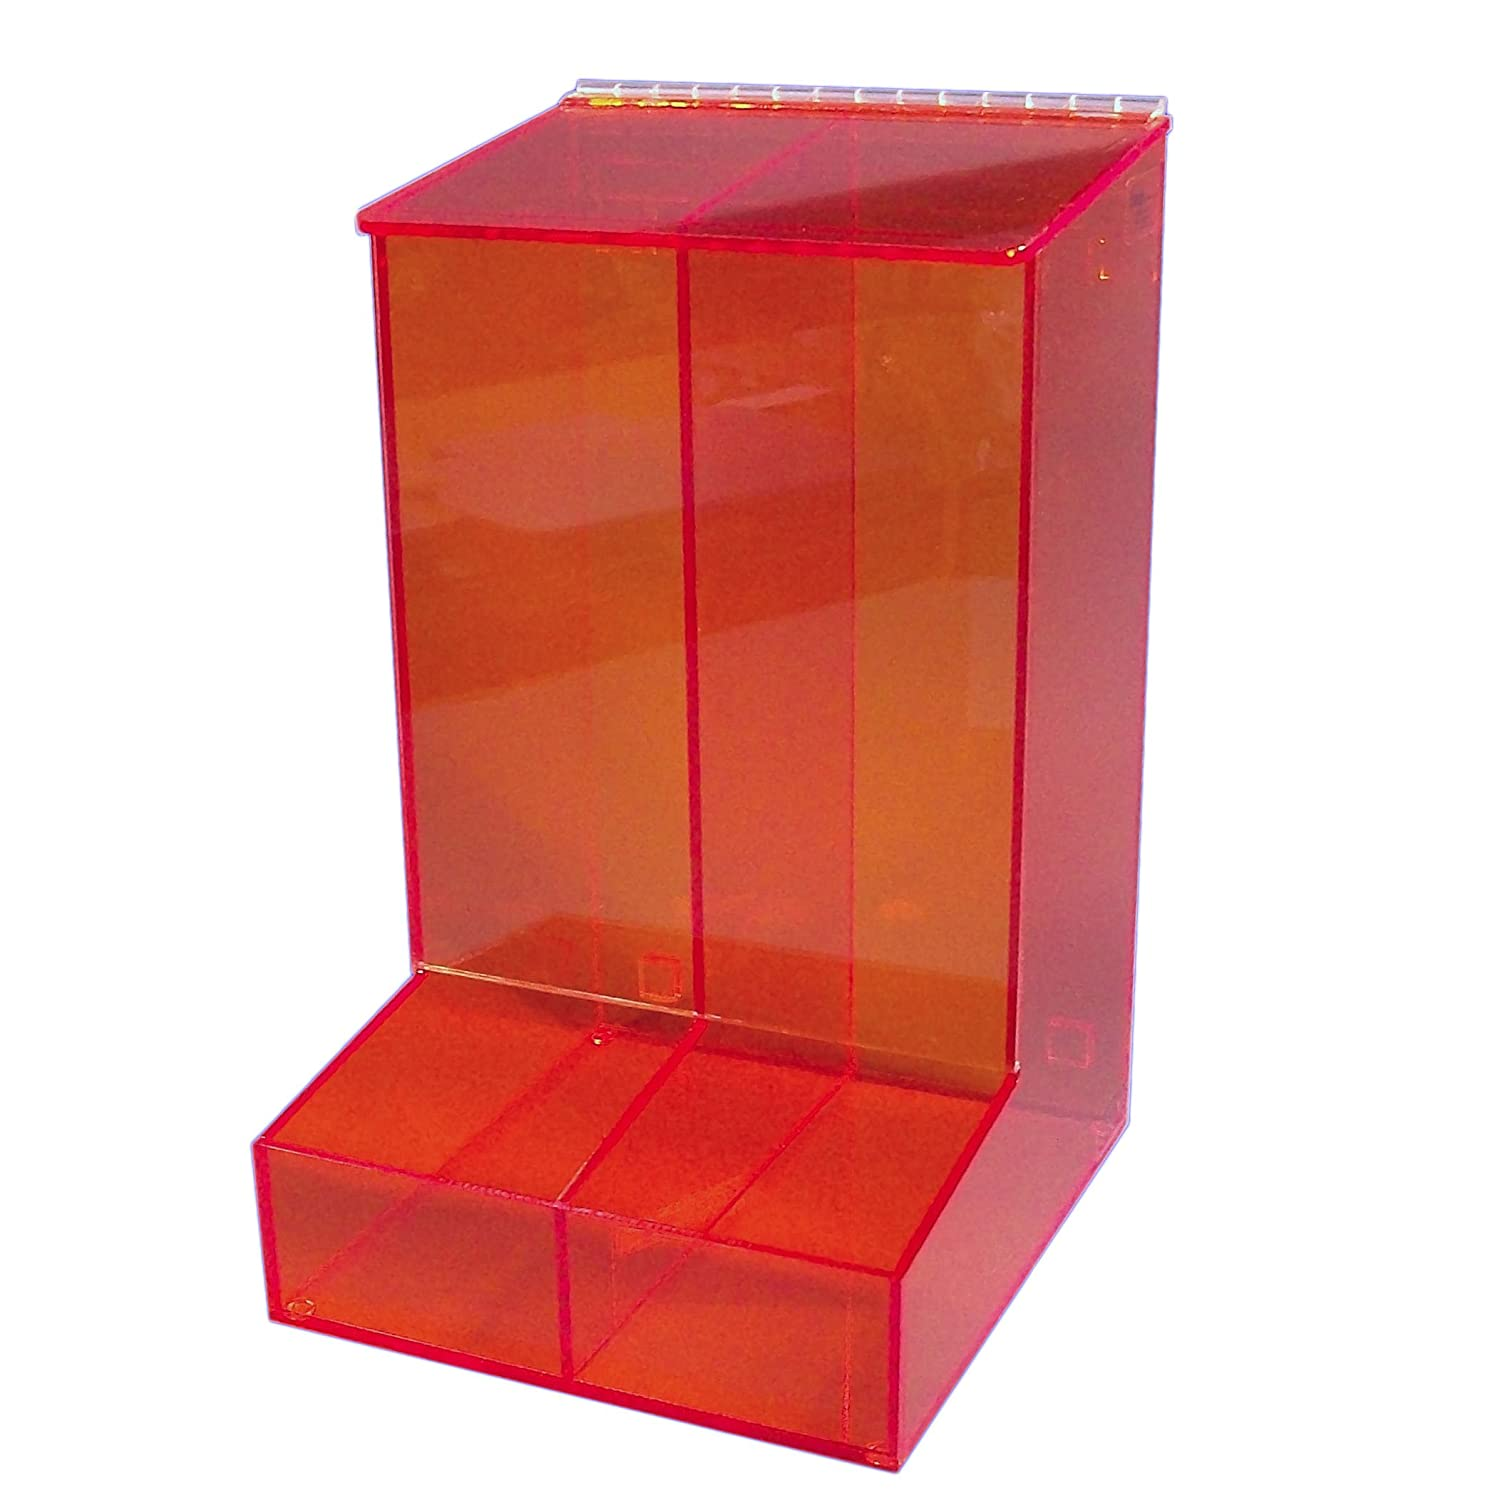 18 Height Amber 10.5 Width 1//4 Thickness S-Curve MCD-20 A Acrylic 2 Compartment Glove Dispenser with Front Access Tray 12 Depth